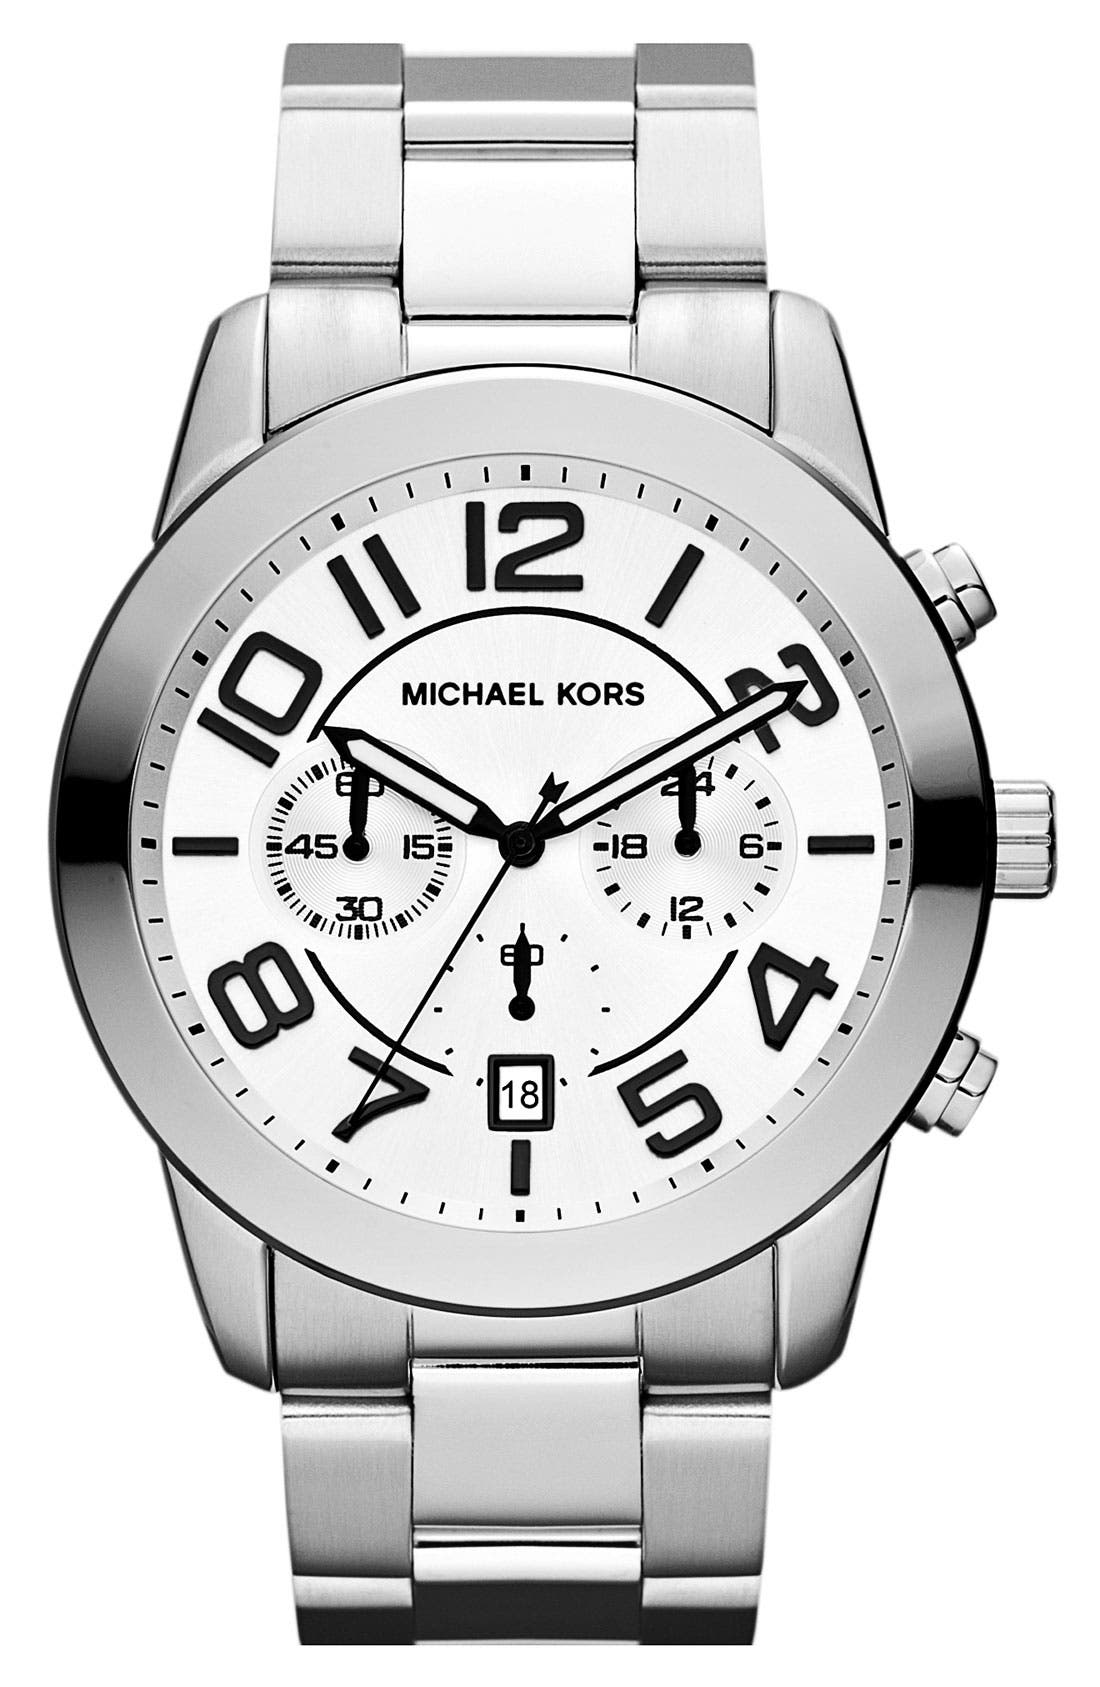 Alternate Image 1 Selected - Michael Kors 'Mercer' Large Chronograph Bracelet Watch, 45mm